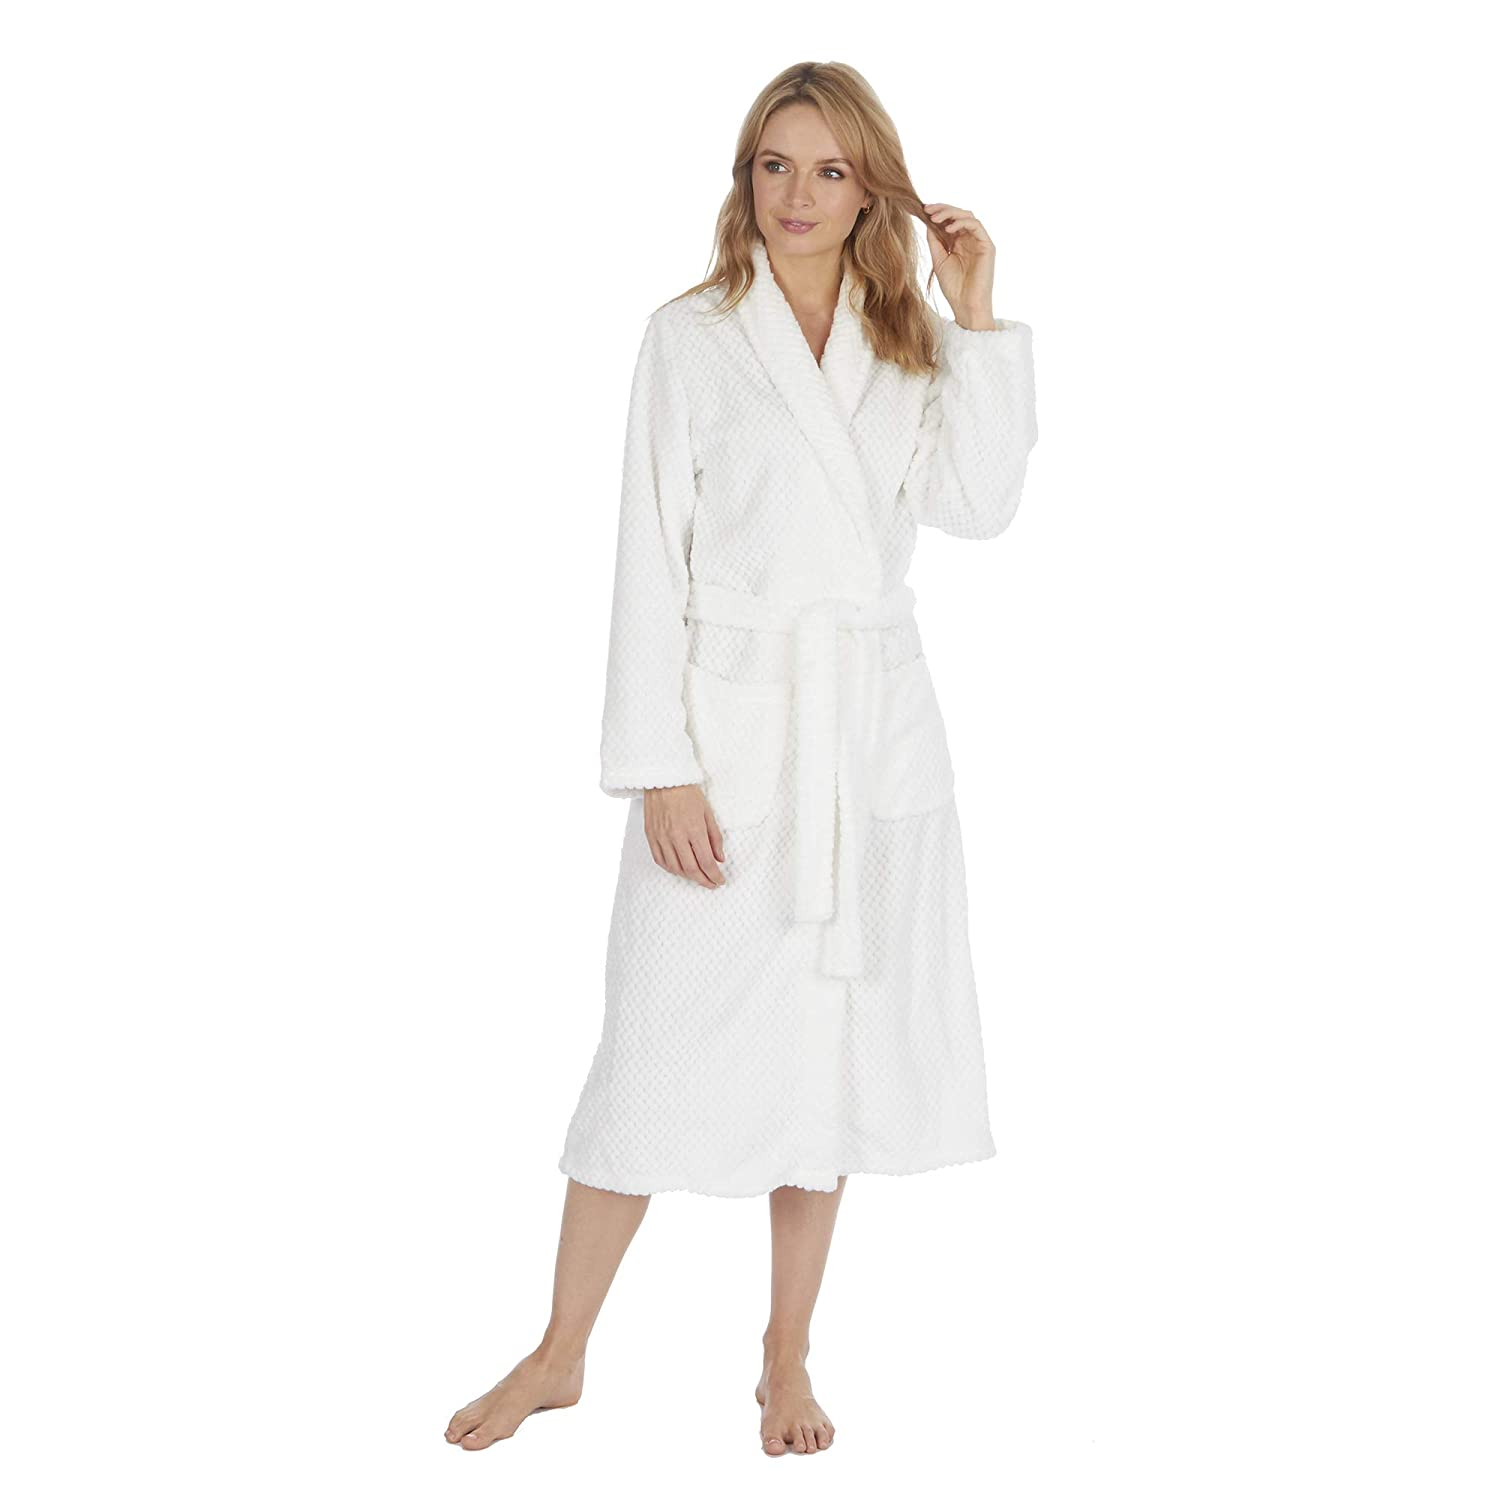 Ladies Star Print Dressing Gown Metzuyan Sizes S-XL Soft Fluffy Fleece Robe with Hood